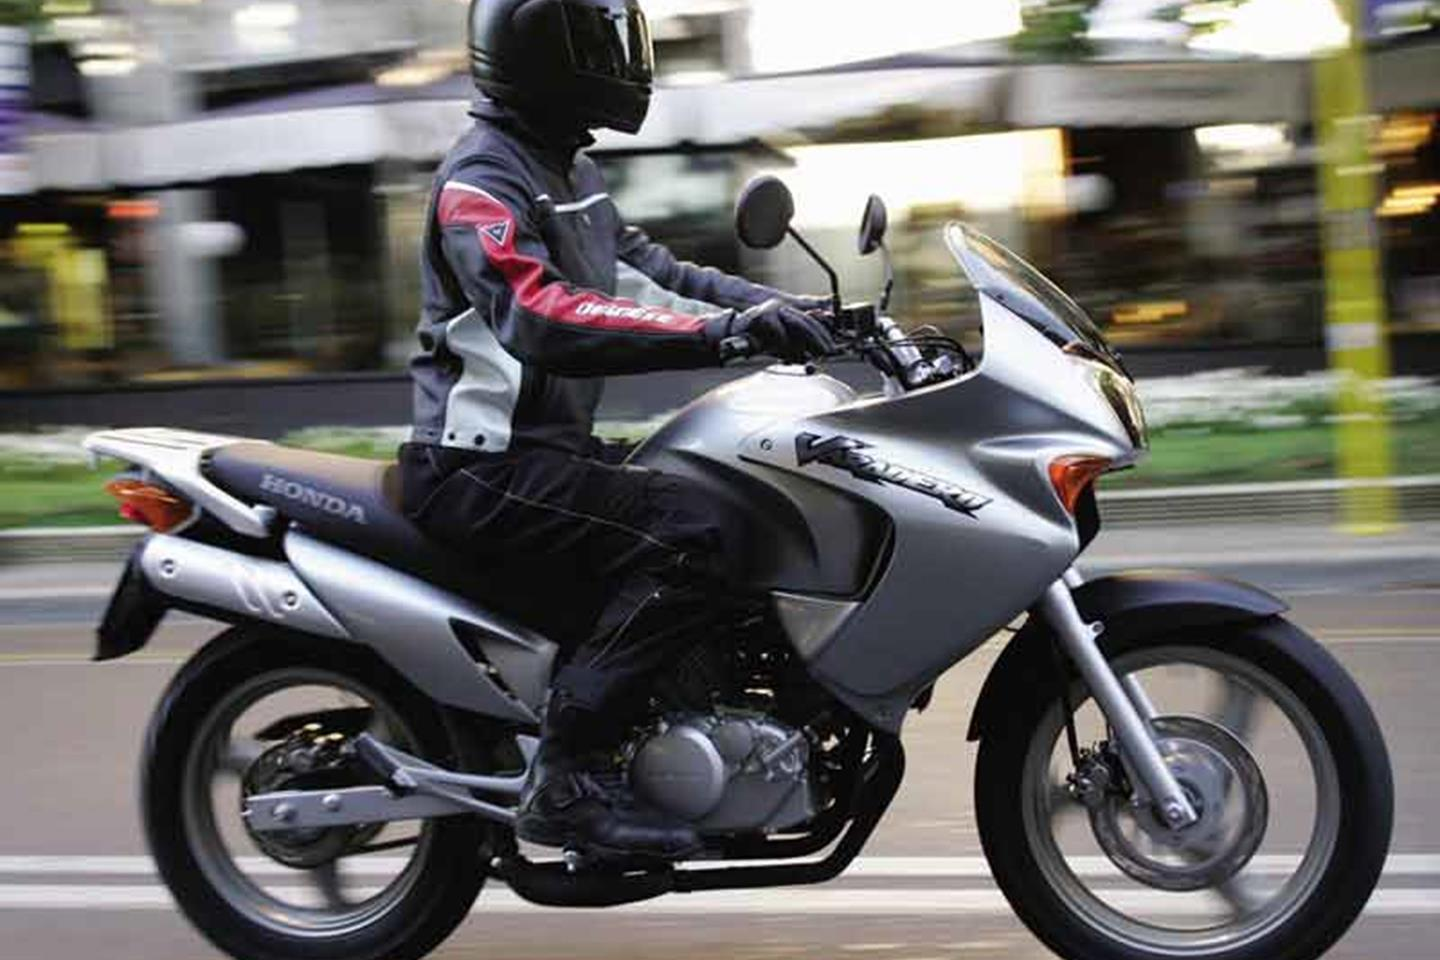 The Honda Varadeo 125 top speed isn't really suitable for motorway riding - it's better in towns